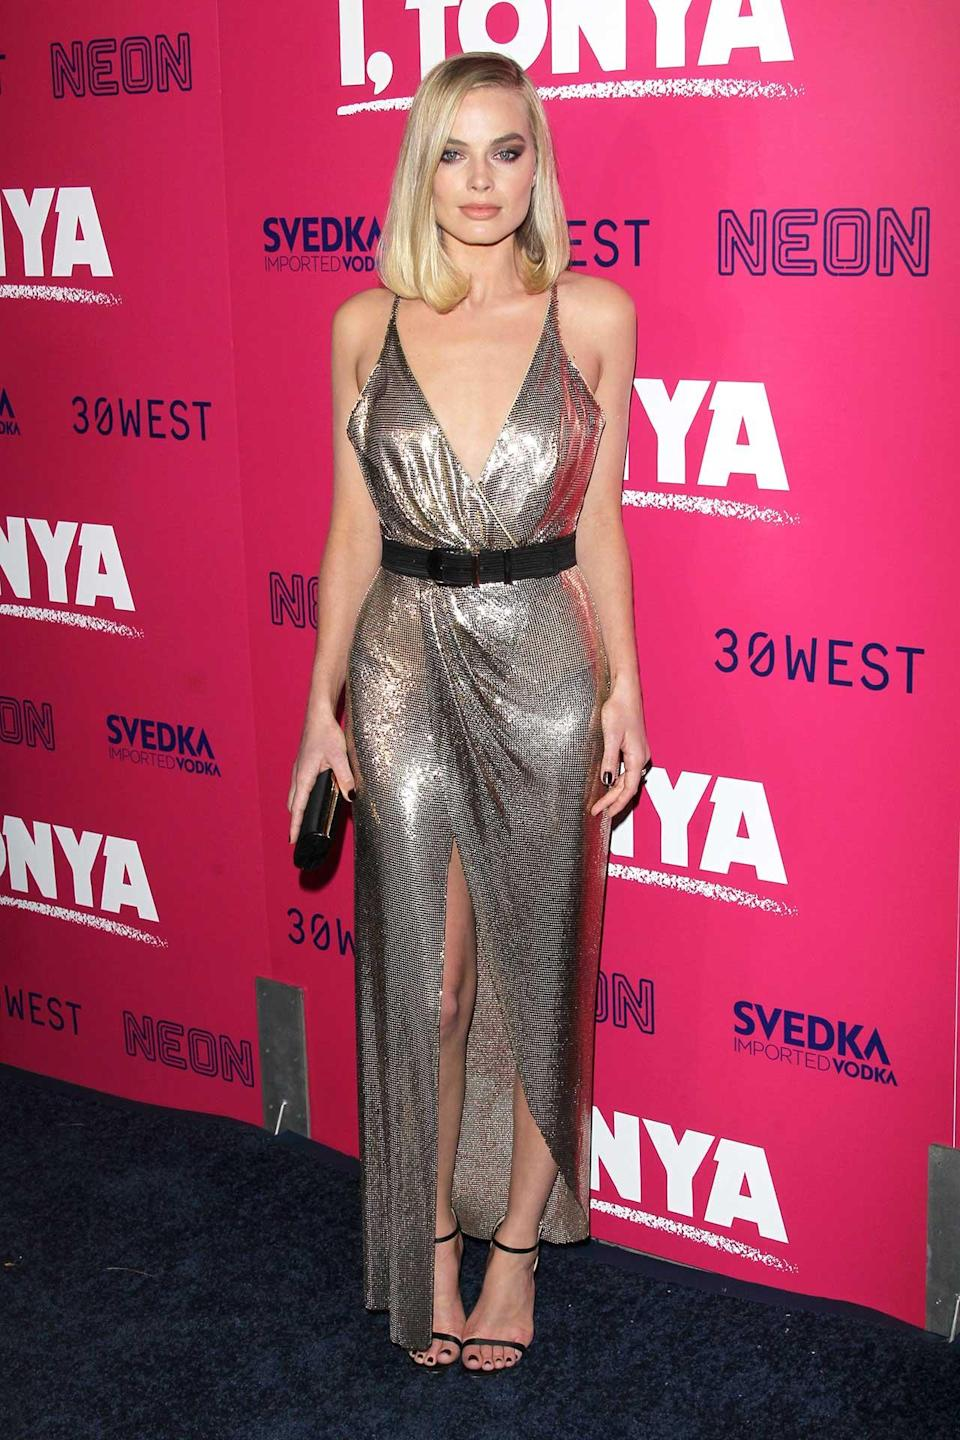 """<h2>Margot Robbie in Versace</h2> <h4>Getty Images</h4> <p> <strong>Related Articles</strong> <ul> <li><a rel=""""nofollow noopener"""" href=""""http://thezoereport.com/fashion/style-tips/box-of-style-ways-to-wear-cape-trend/?utm_source=yahoo&utm_medium=syndication"""" target=""""_blank"""" data-ylk=""""slk:The Key Styling Piece Your Wardrobe Needs"""" class=""""link rapid-noclick-resp"""">The Key Styling Piece Your Wardrobe Needs</a></li><li><a rel=""""nofollow noopener"""" href=""""http://thezoereport.com/living/wellness/6-easy-things-sunday-will-improve-week/?utm_source=yahoo&utm_medium=syndication"""" target=""""_blank"""" data-ylk=""""slk:6 Easy Things To Do On Sunday That Will Improve Your Week"""" class=""""link rapid-noclick-resp"""">6 Easy Things To Do On Sunday That Will Improve Your Week</a></li><li><a rel=""""nofollow noopener"""" href=""""http://thezoereport.com/beauty/makeup/draw-perfect-cat-eye/?utm_source=yahoo&utm_medium=syndication"""" target=""""_blank"""" data-ylk=""""slk:How To Draw The Perfect Cat Eye"""" class=""""link rapid-noclick-resp"""">How To Draw The Perfect Cat Eye</a></li> </ul> </p>"""